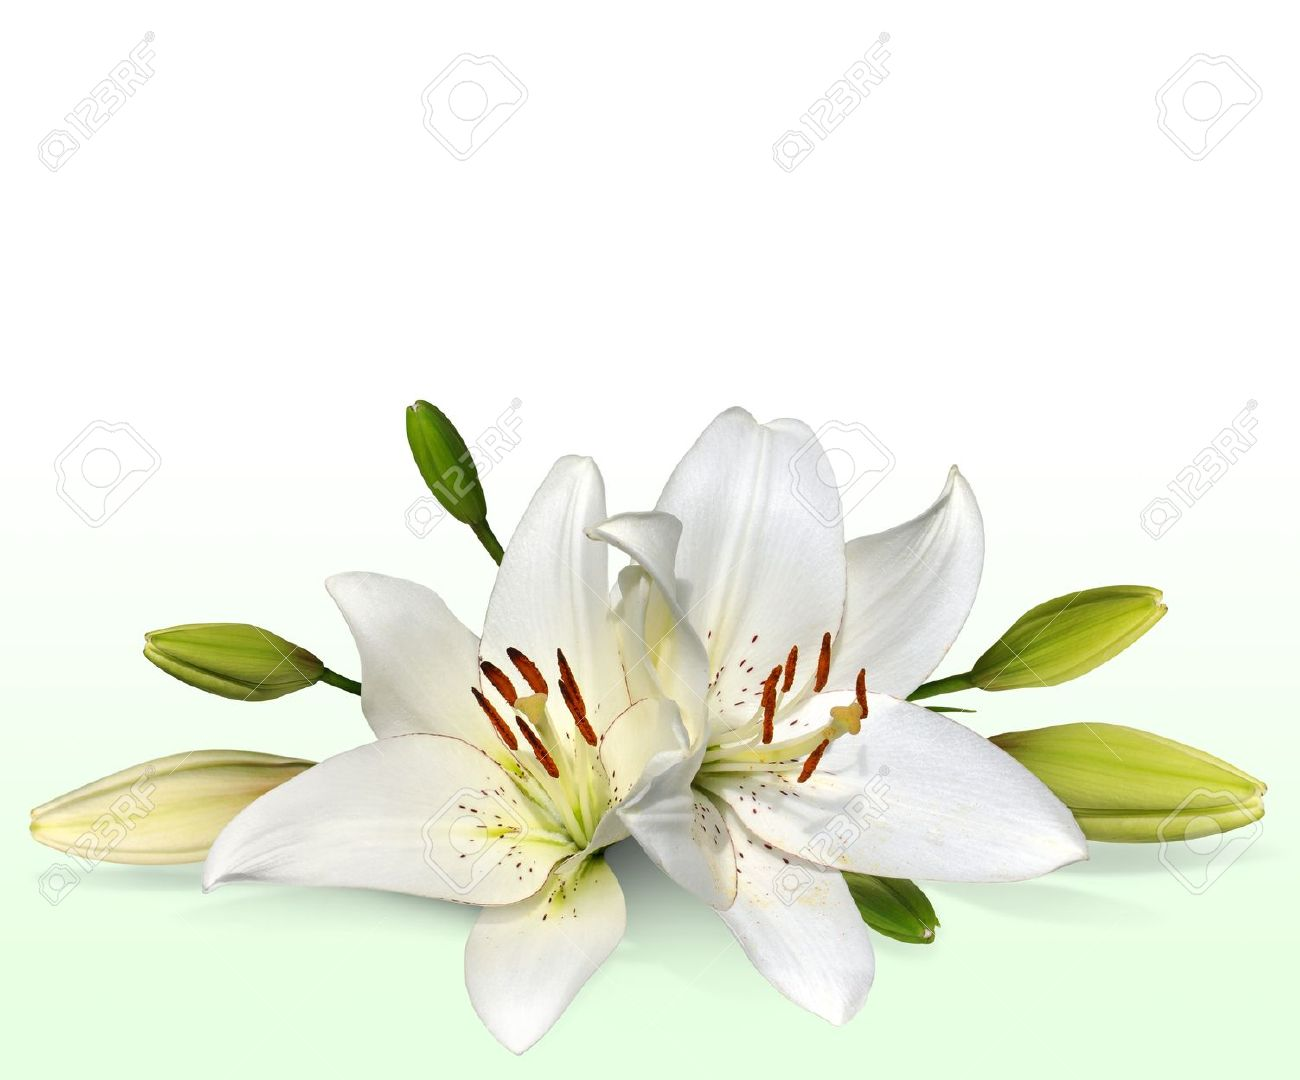 Easter Lily Flowers Also Known As November Lilies Stock Photo